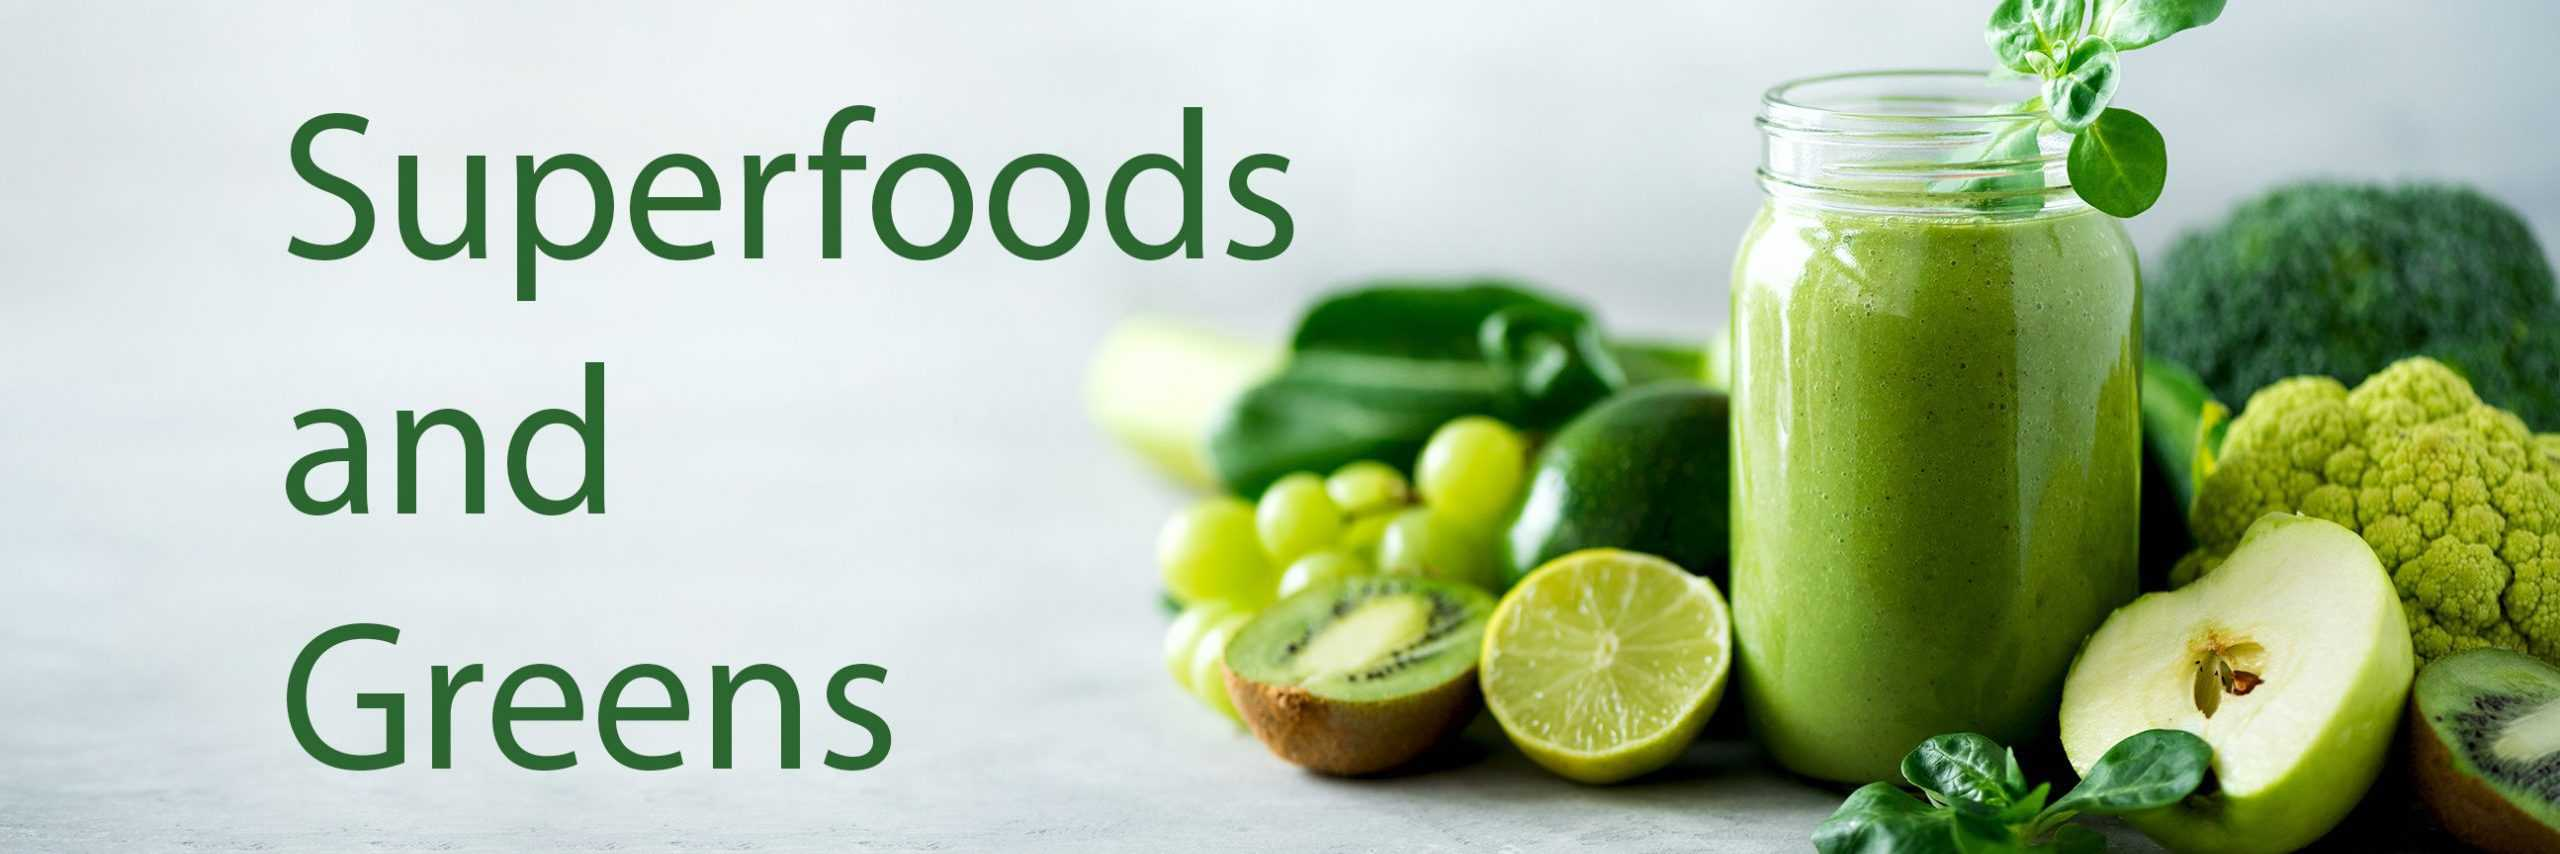 Superfoods and Greens Supplements